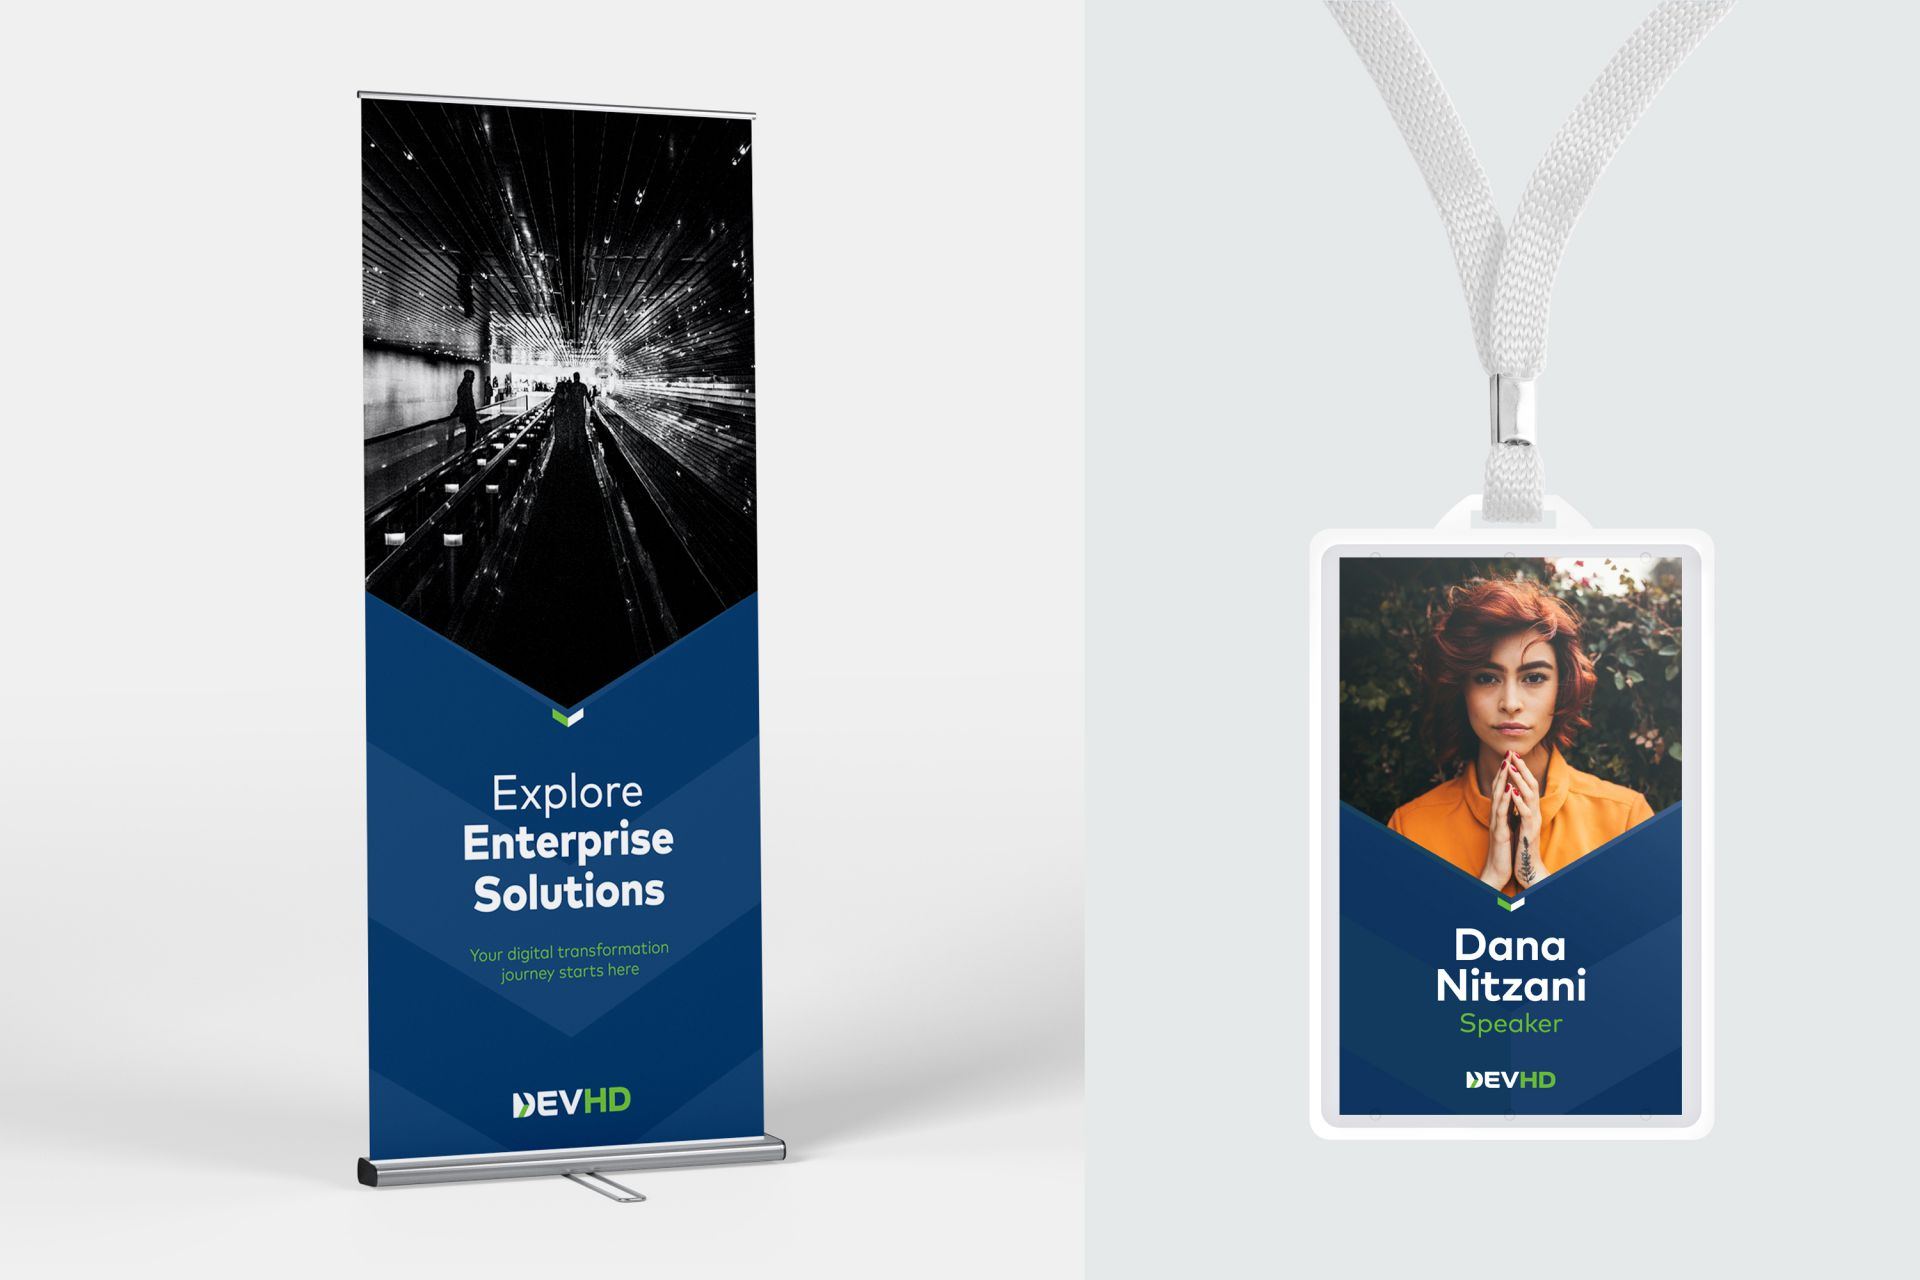 DEVHD Billboard and Name Card Design